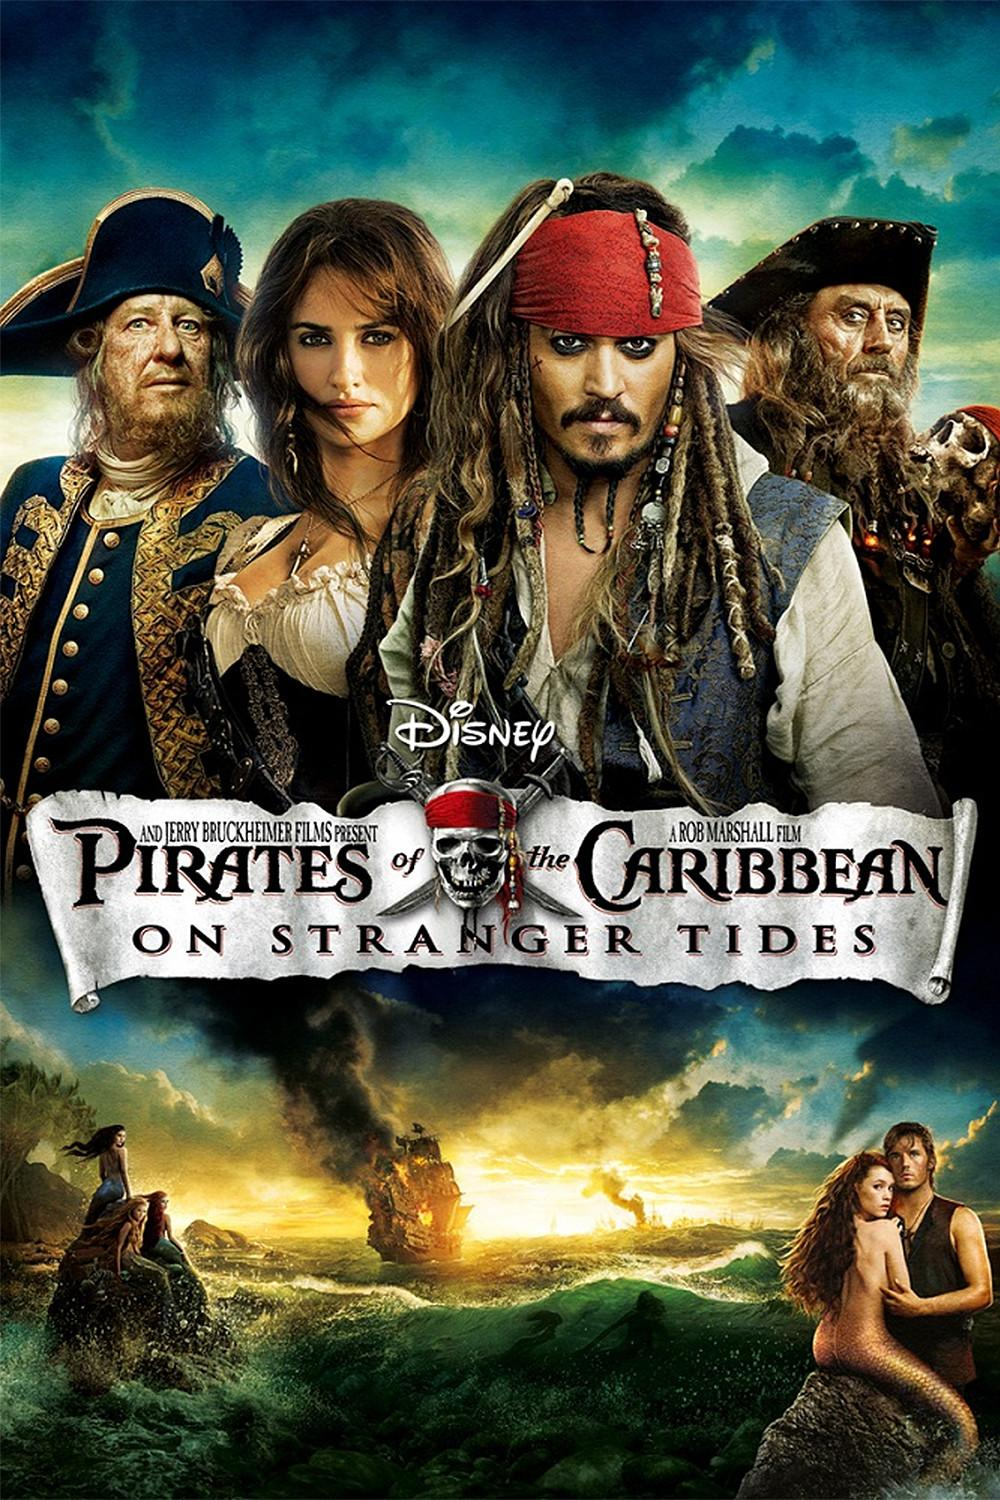 Pirates of the carrebian movie